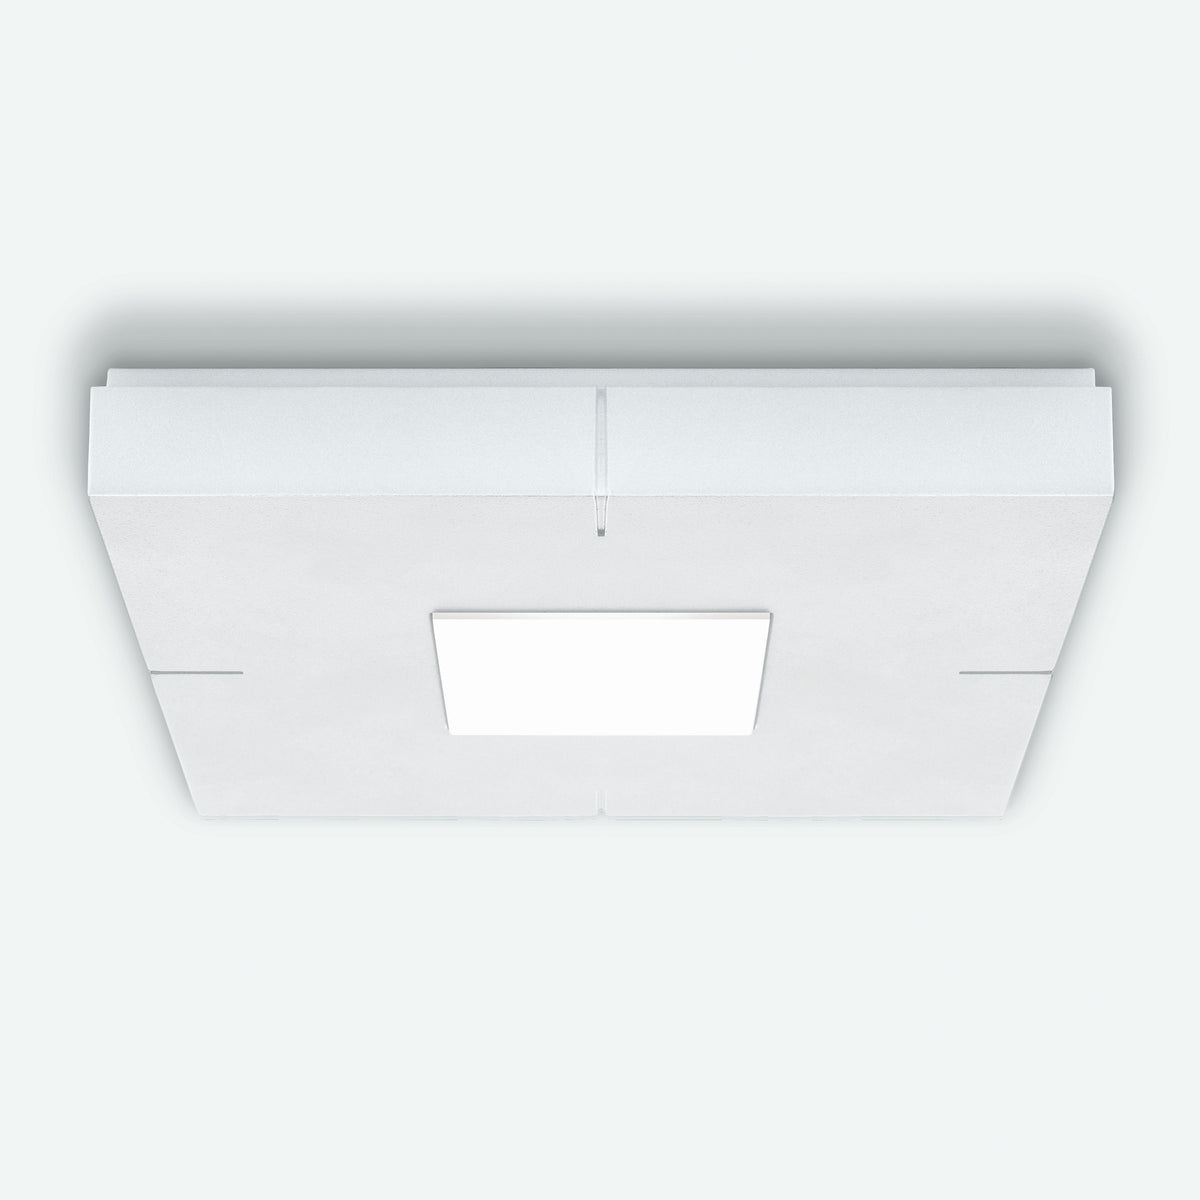 Pf 22 Ceiling Light